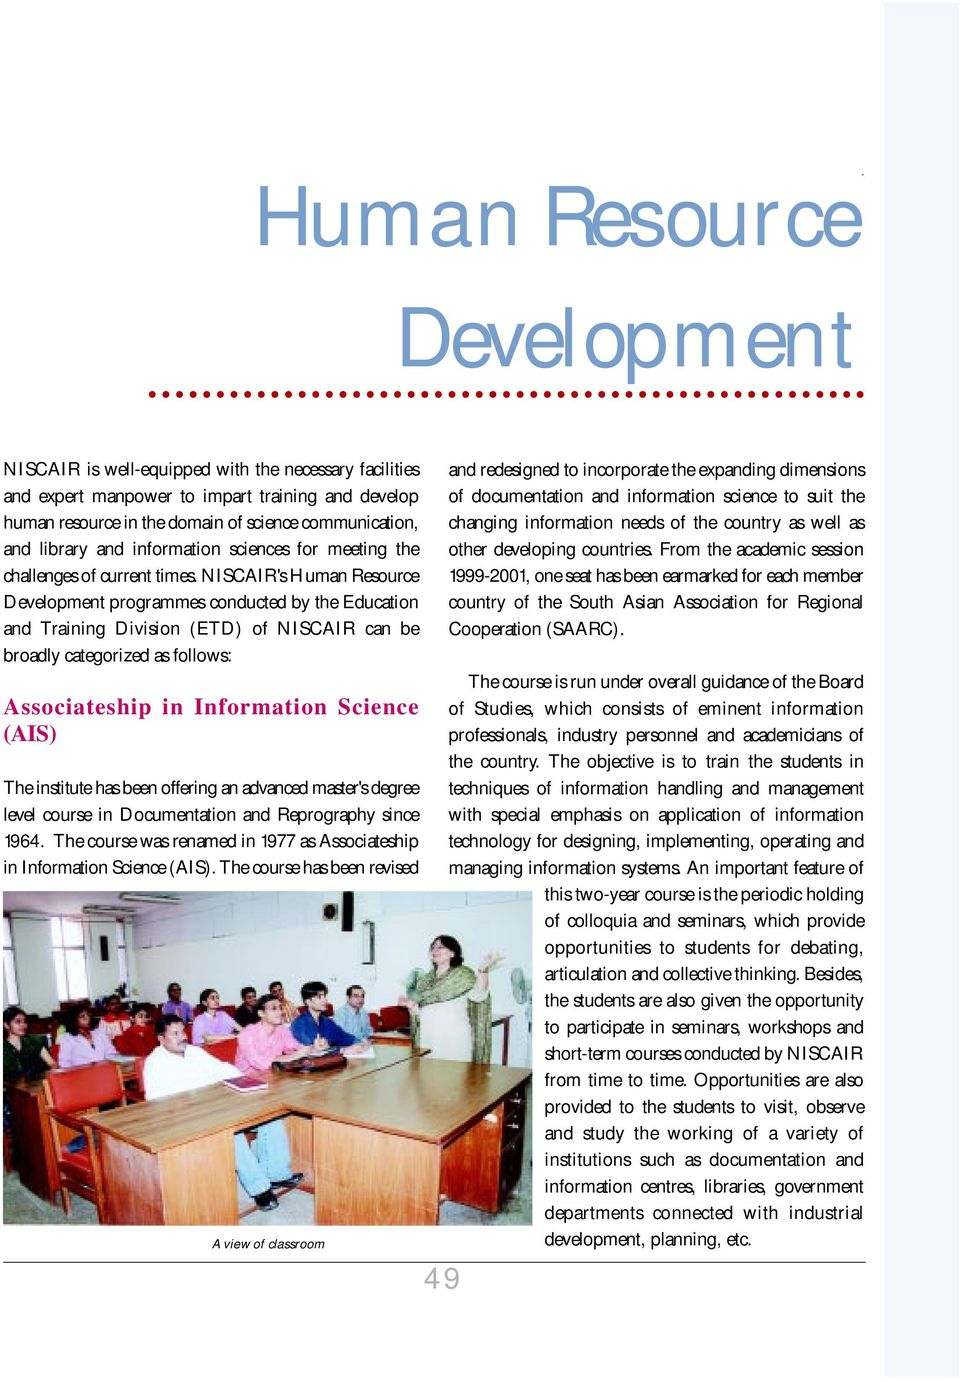 NISCAIR's Human Resource Development programmes conducted by the Education and Training Division (ETD) of NISCAIR can be broadly categorized as follows: Associateship in Information Science (AIS) The